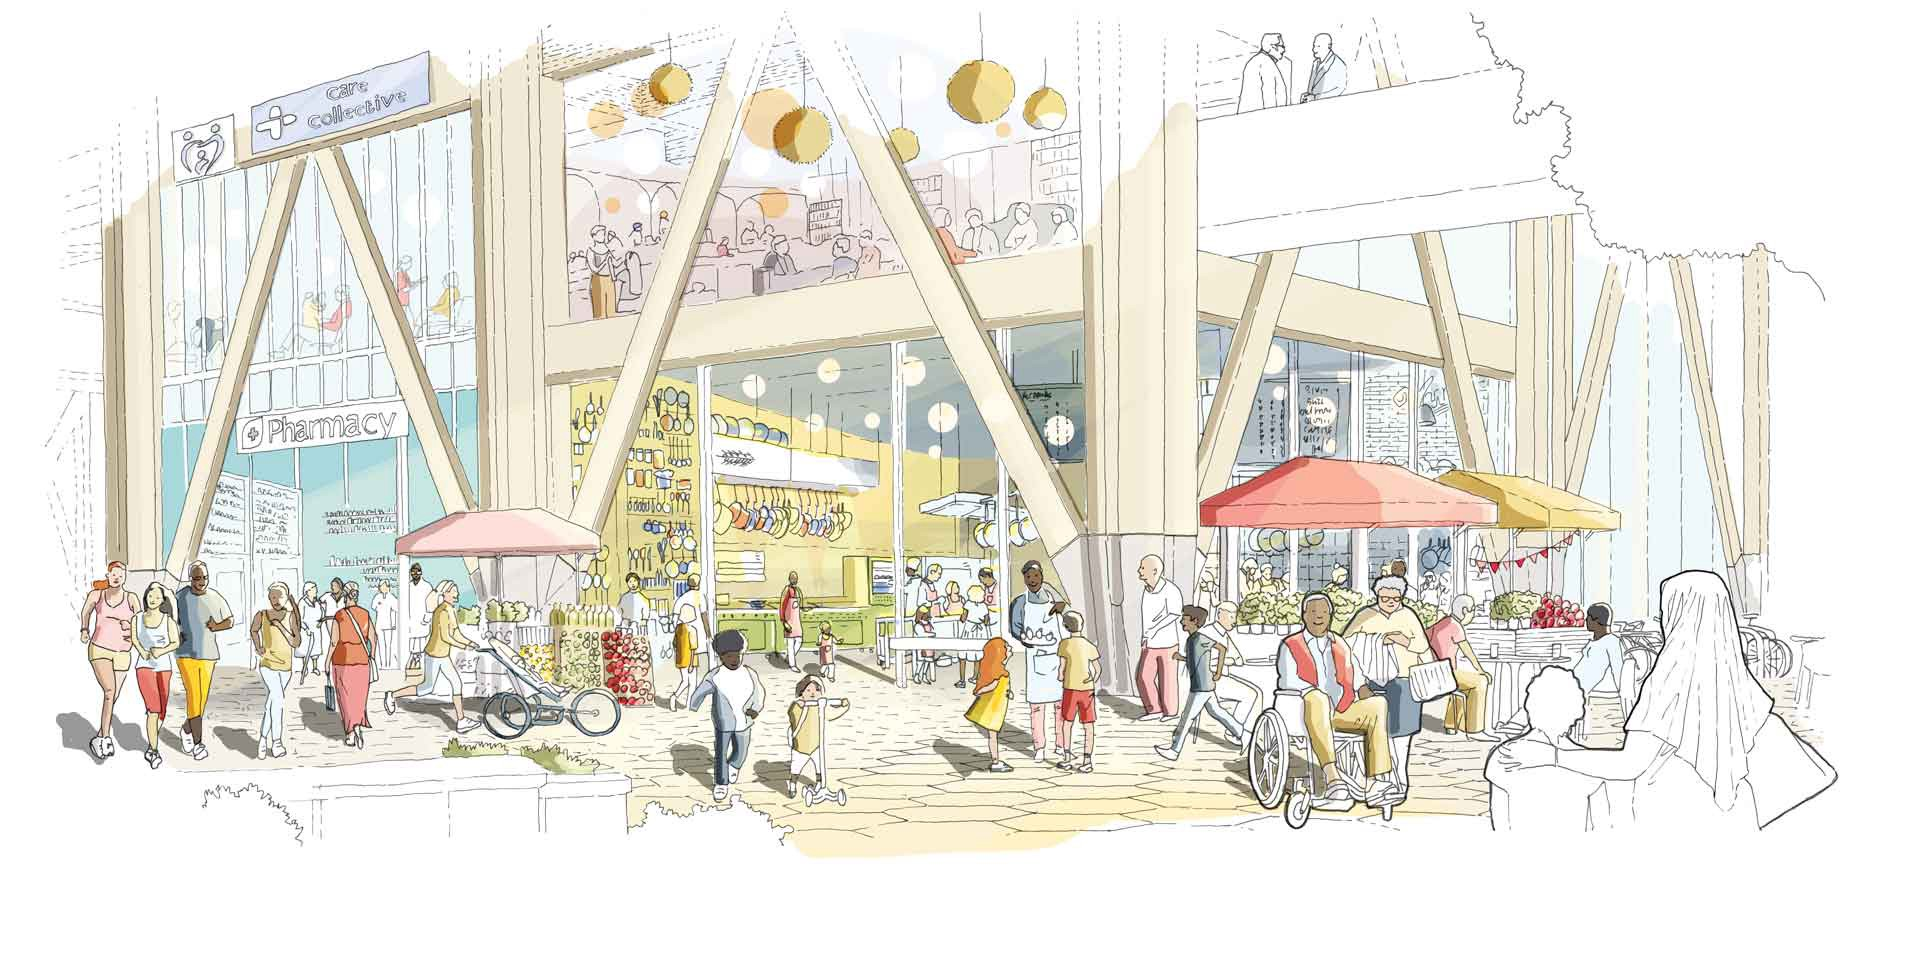 A ground-floor area filled with shops, services, and public spaces that is accessible to people of all ages and abilities.